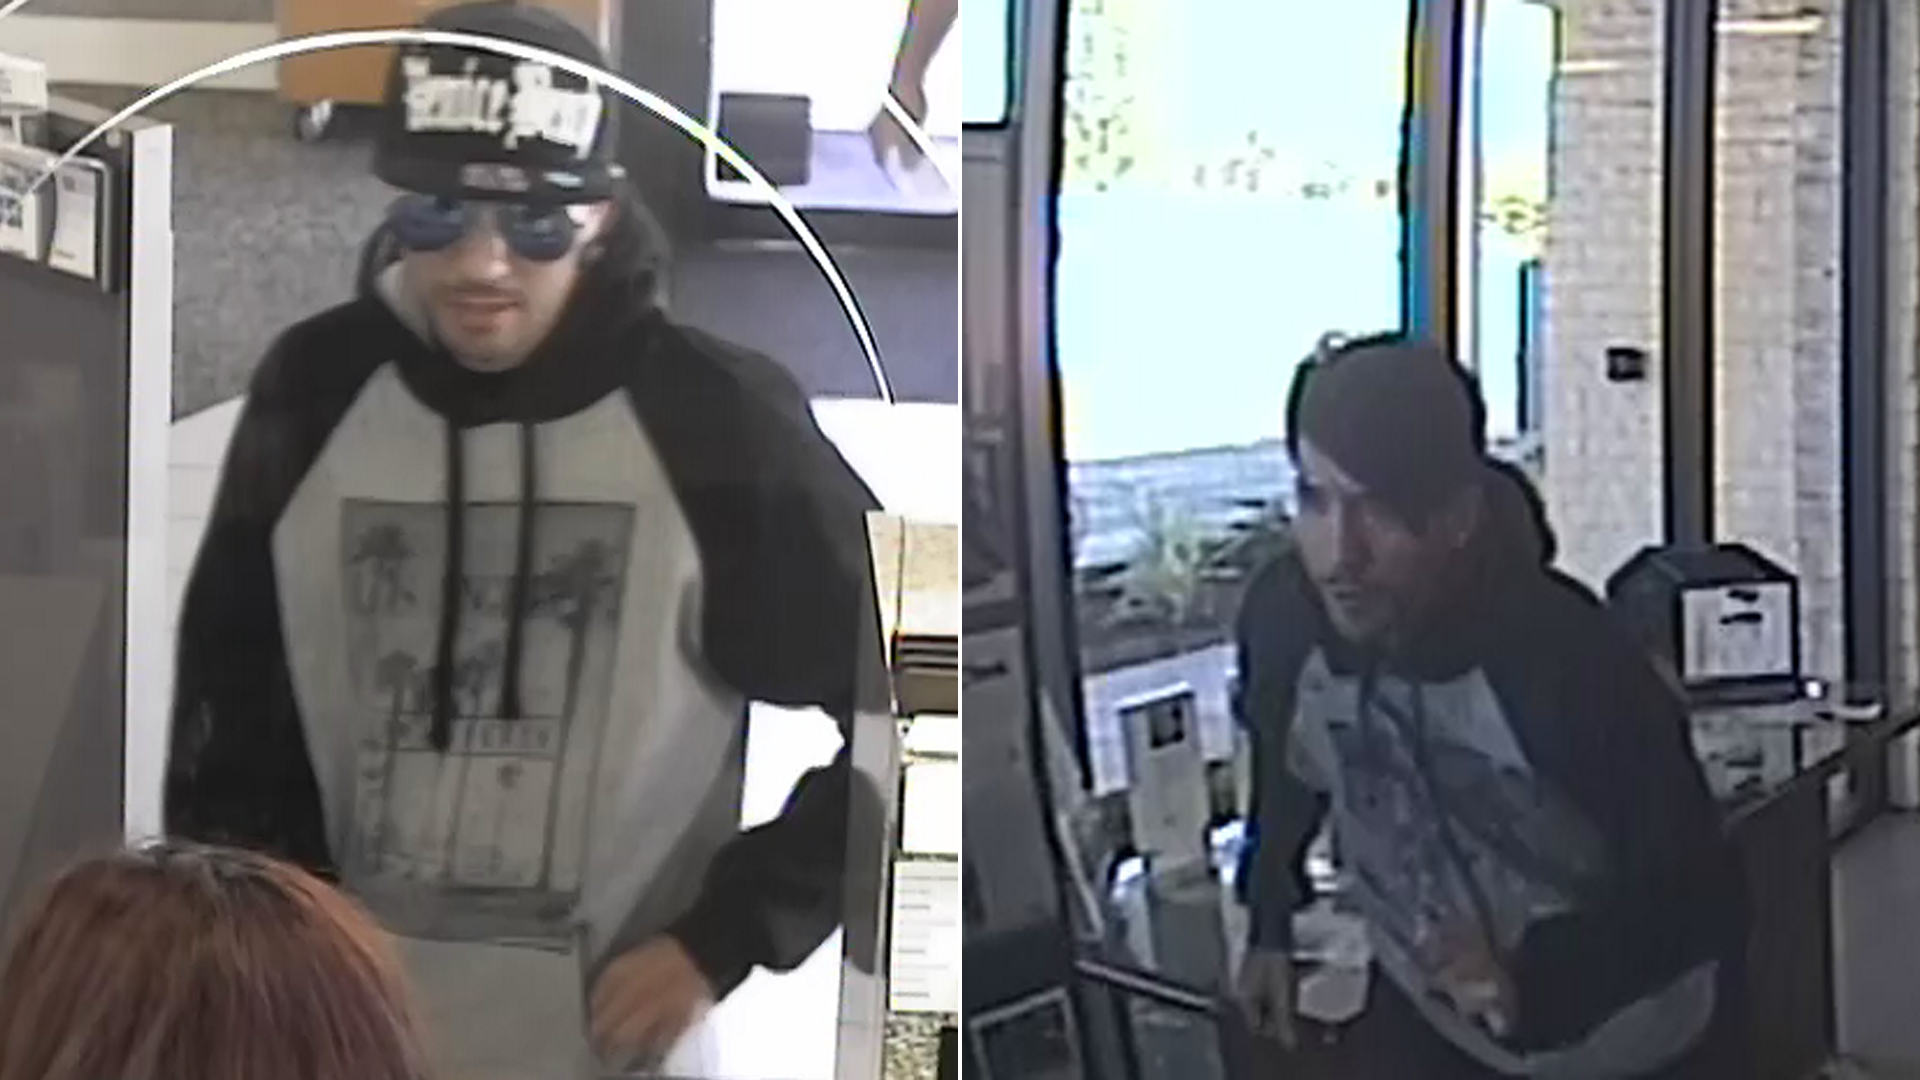 James Hamill is shown in a U.S. Bank branch in Burbank on April 20, 2018, according to Burbank police, who released these images.